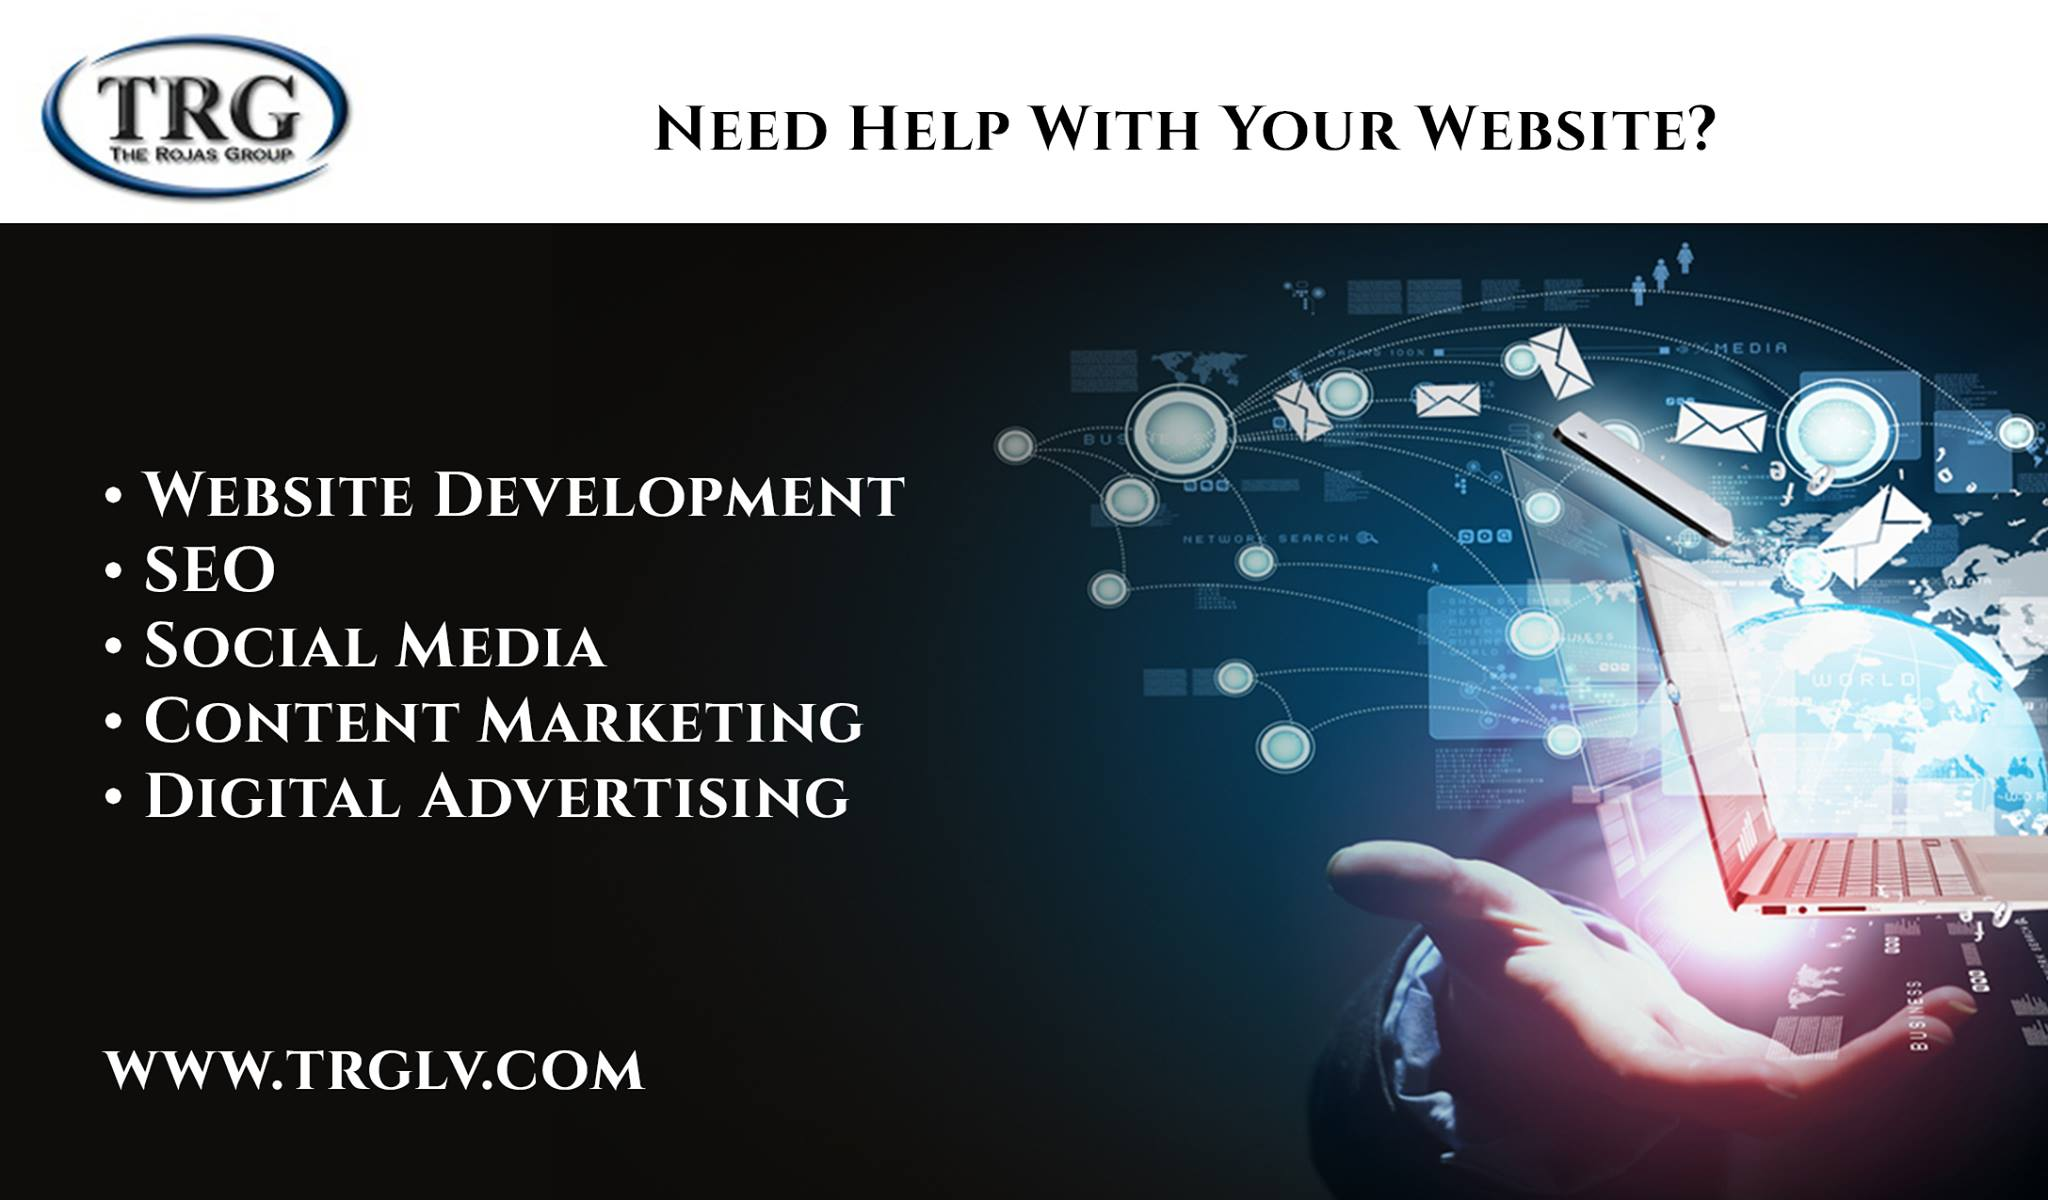 The Rojas Group TRGLV, Inc Social Media Website Development Services in Las Vegas